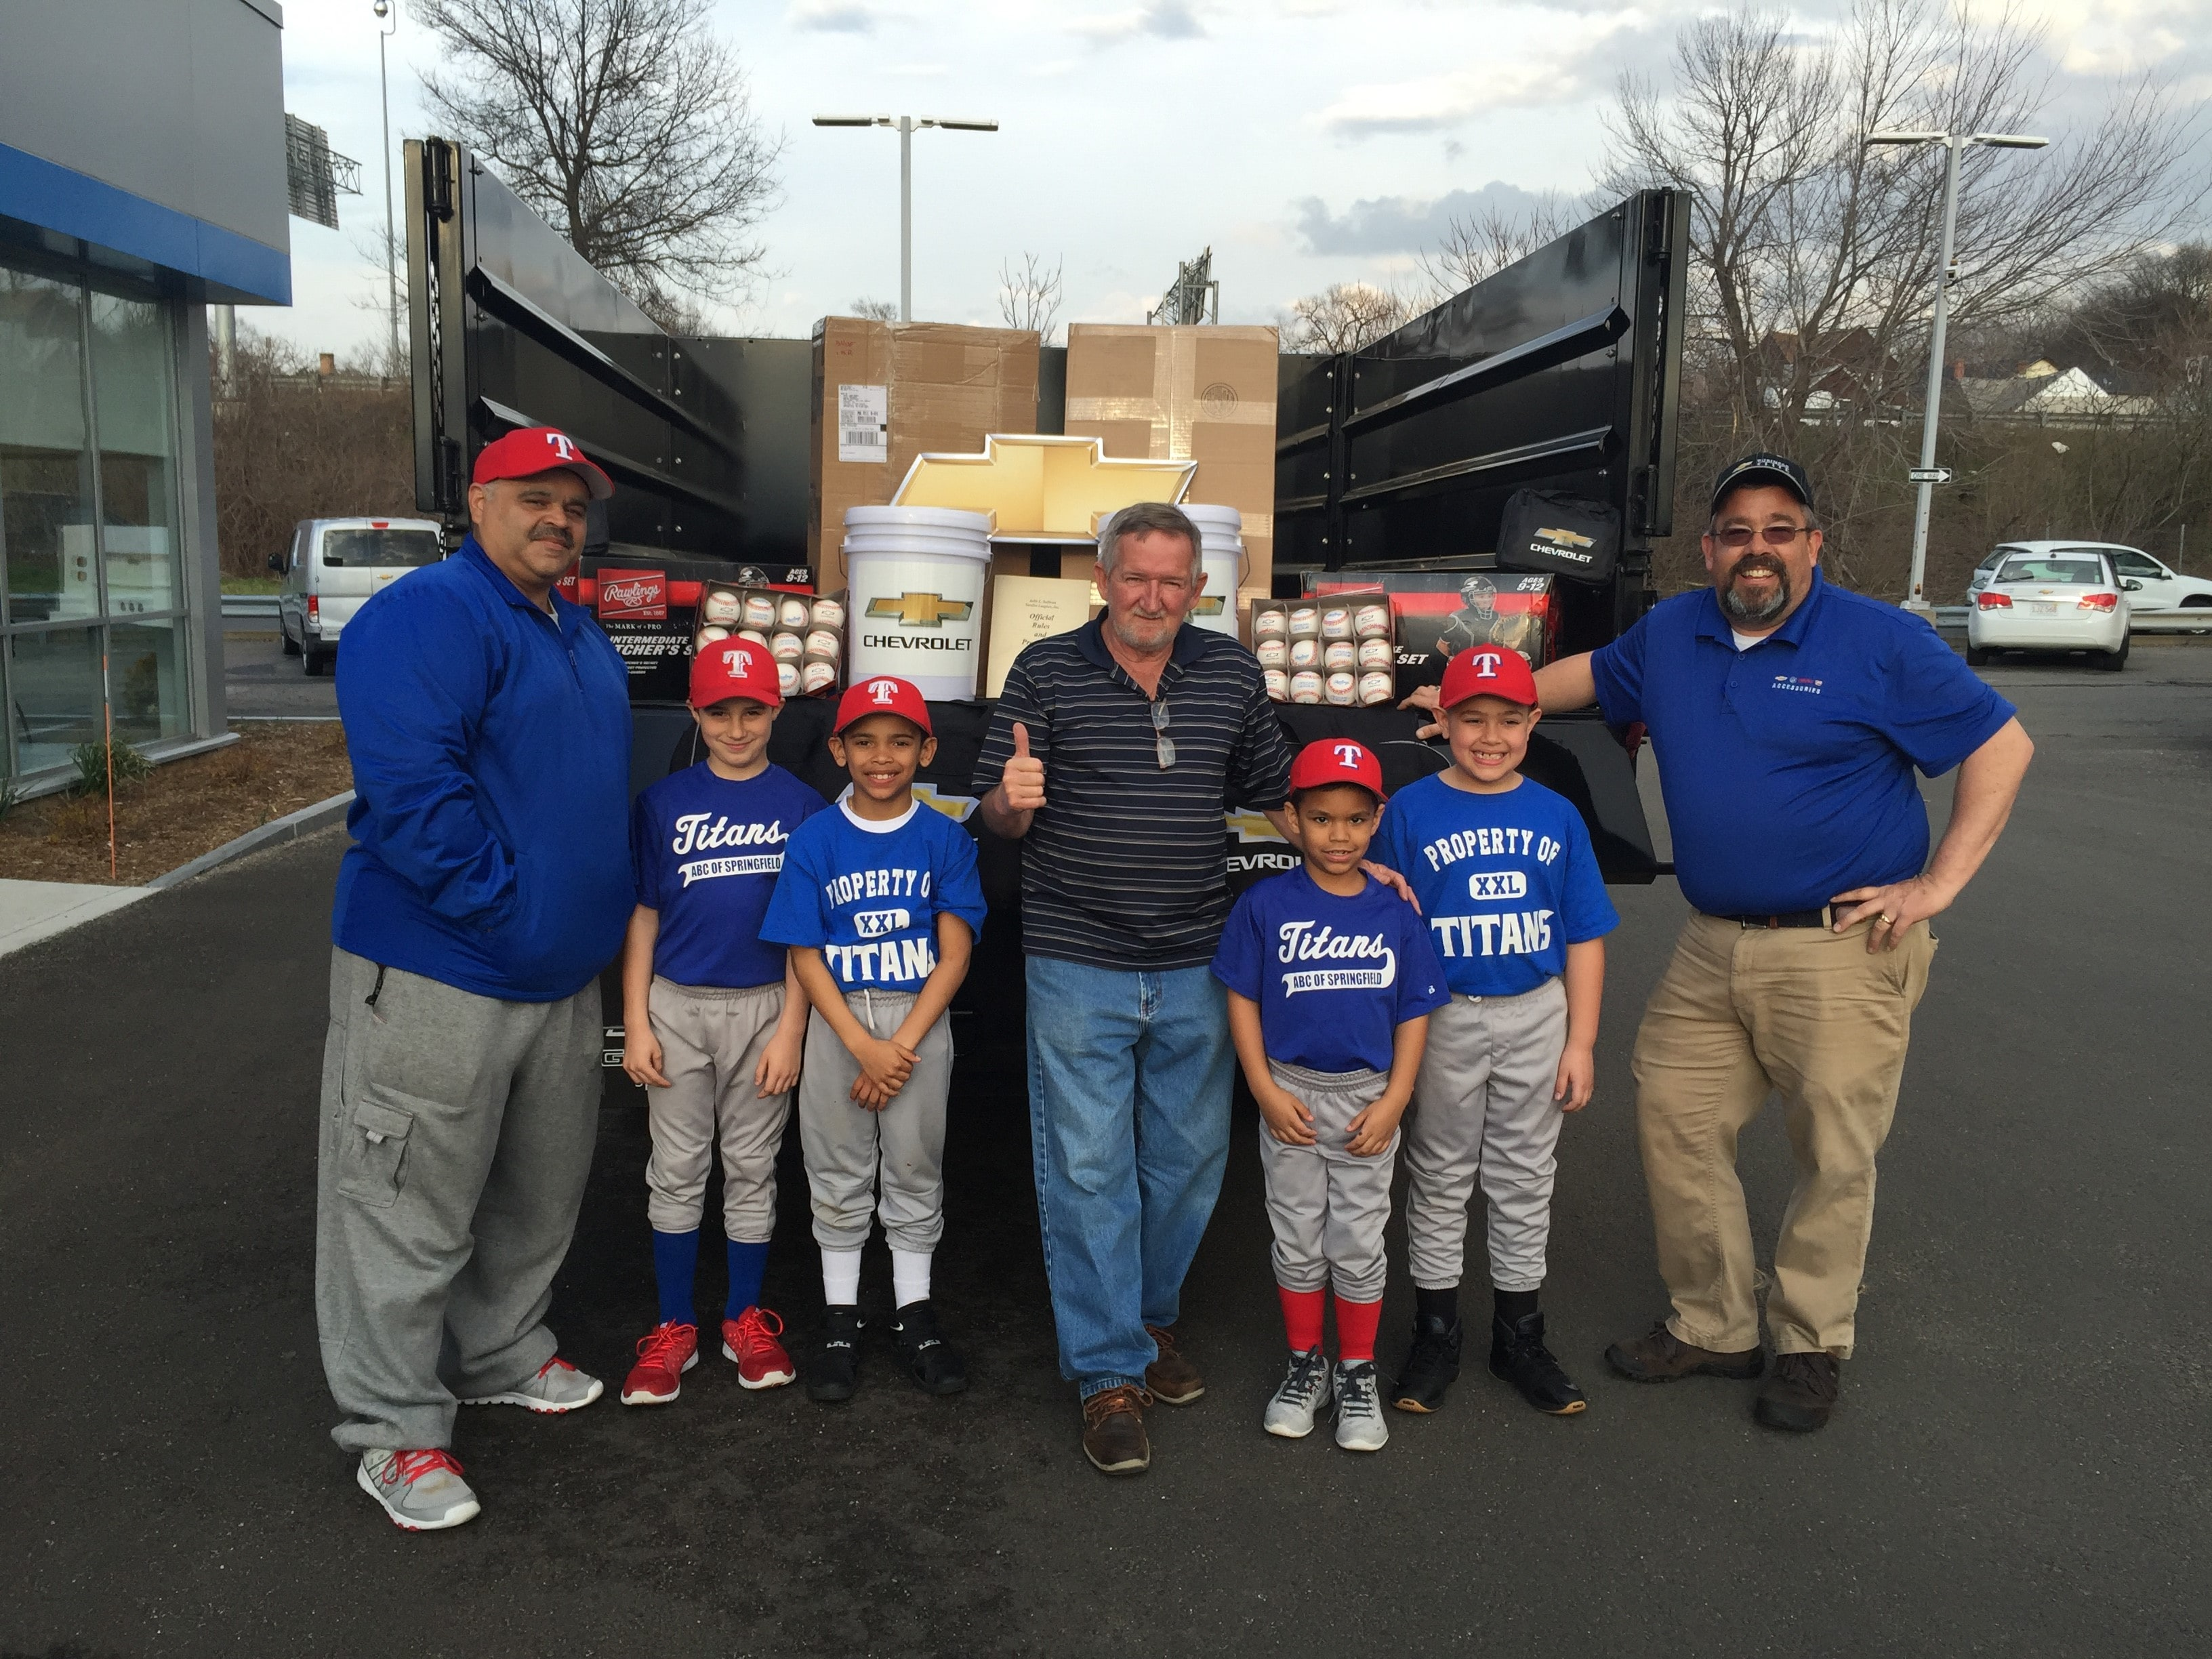 This Spring, The Team At Balise Chevrolet In Springfield, MA Is Back At It  Participating In The Nationwide Chevy Youth Baseball Programu2014forging A ...